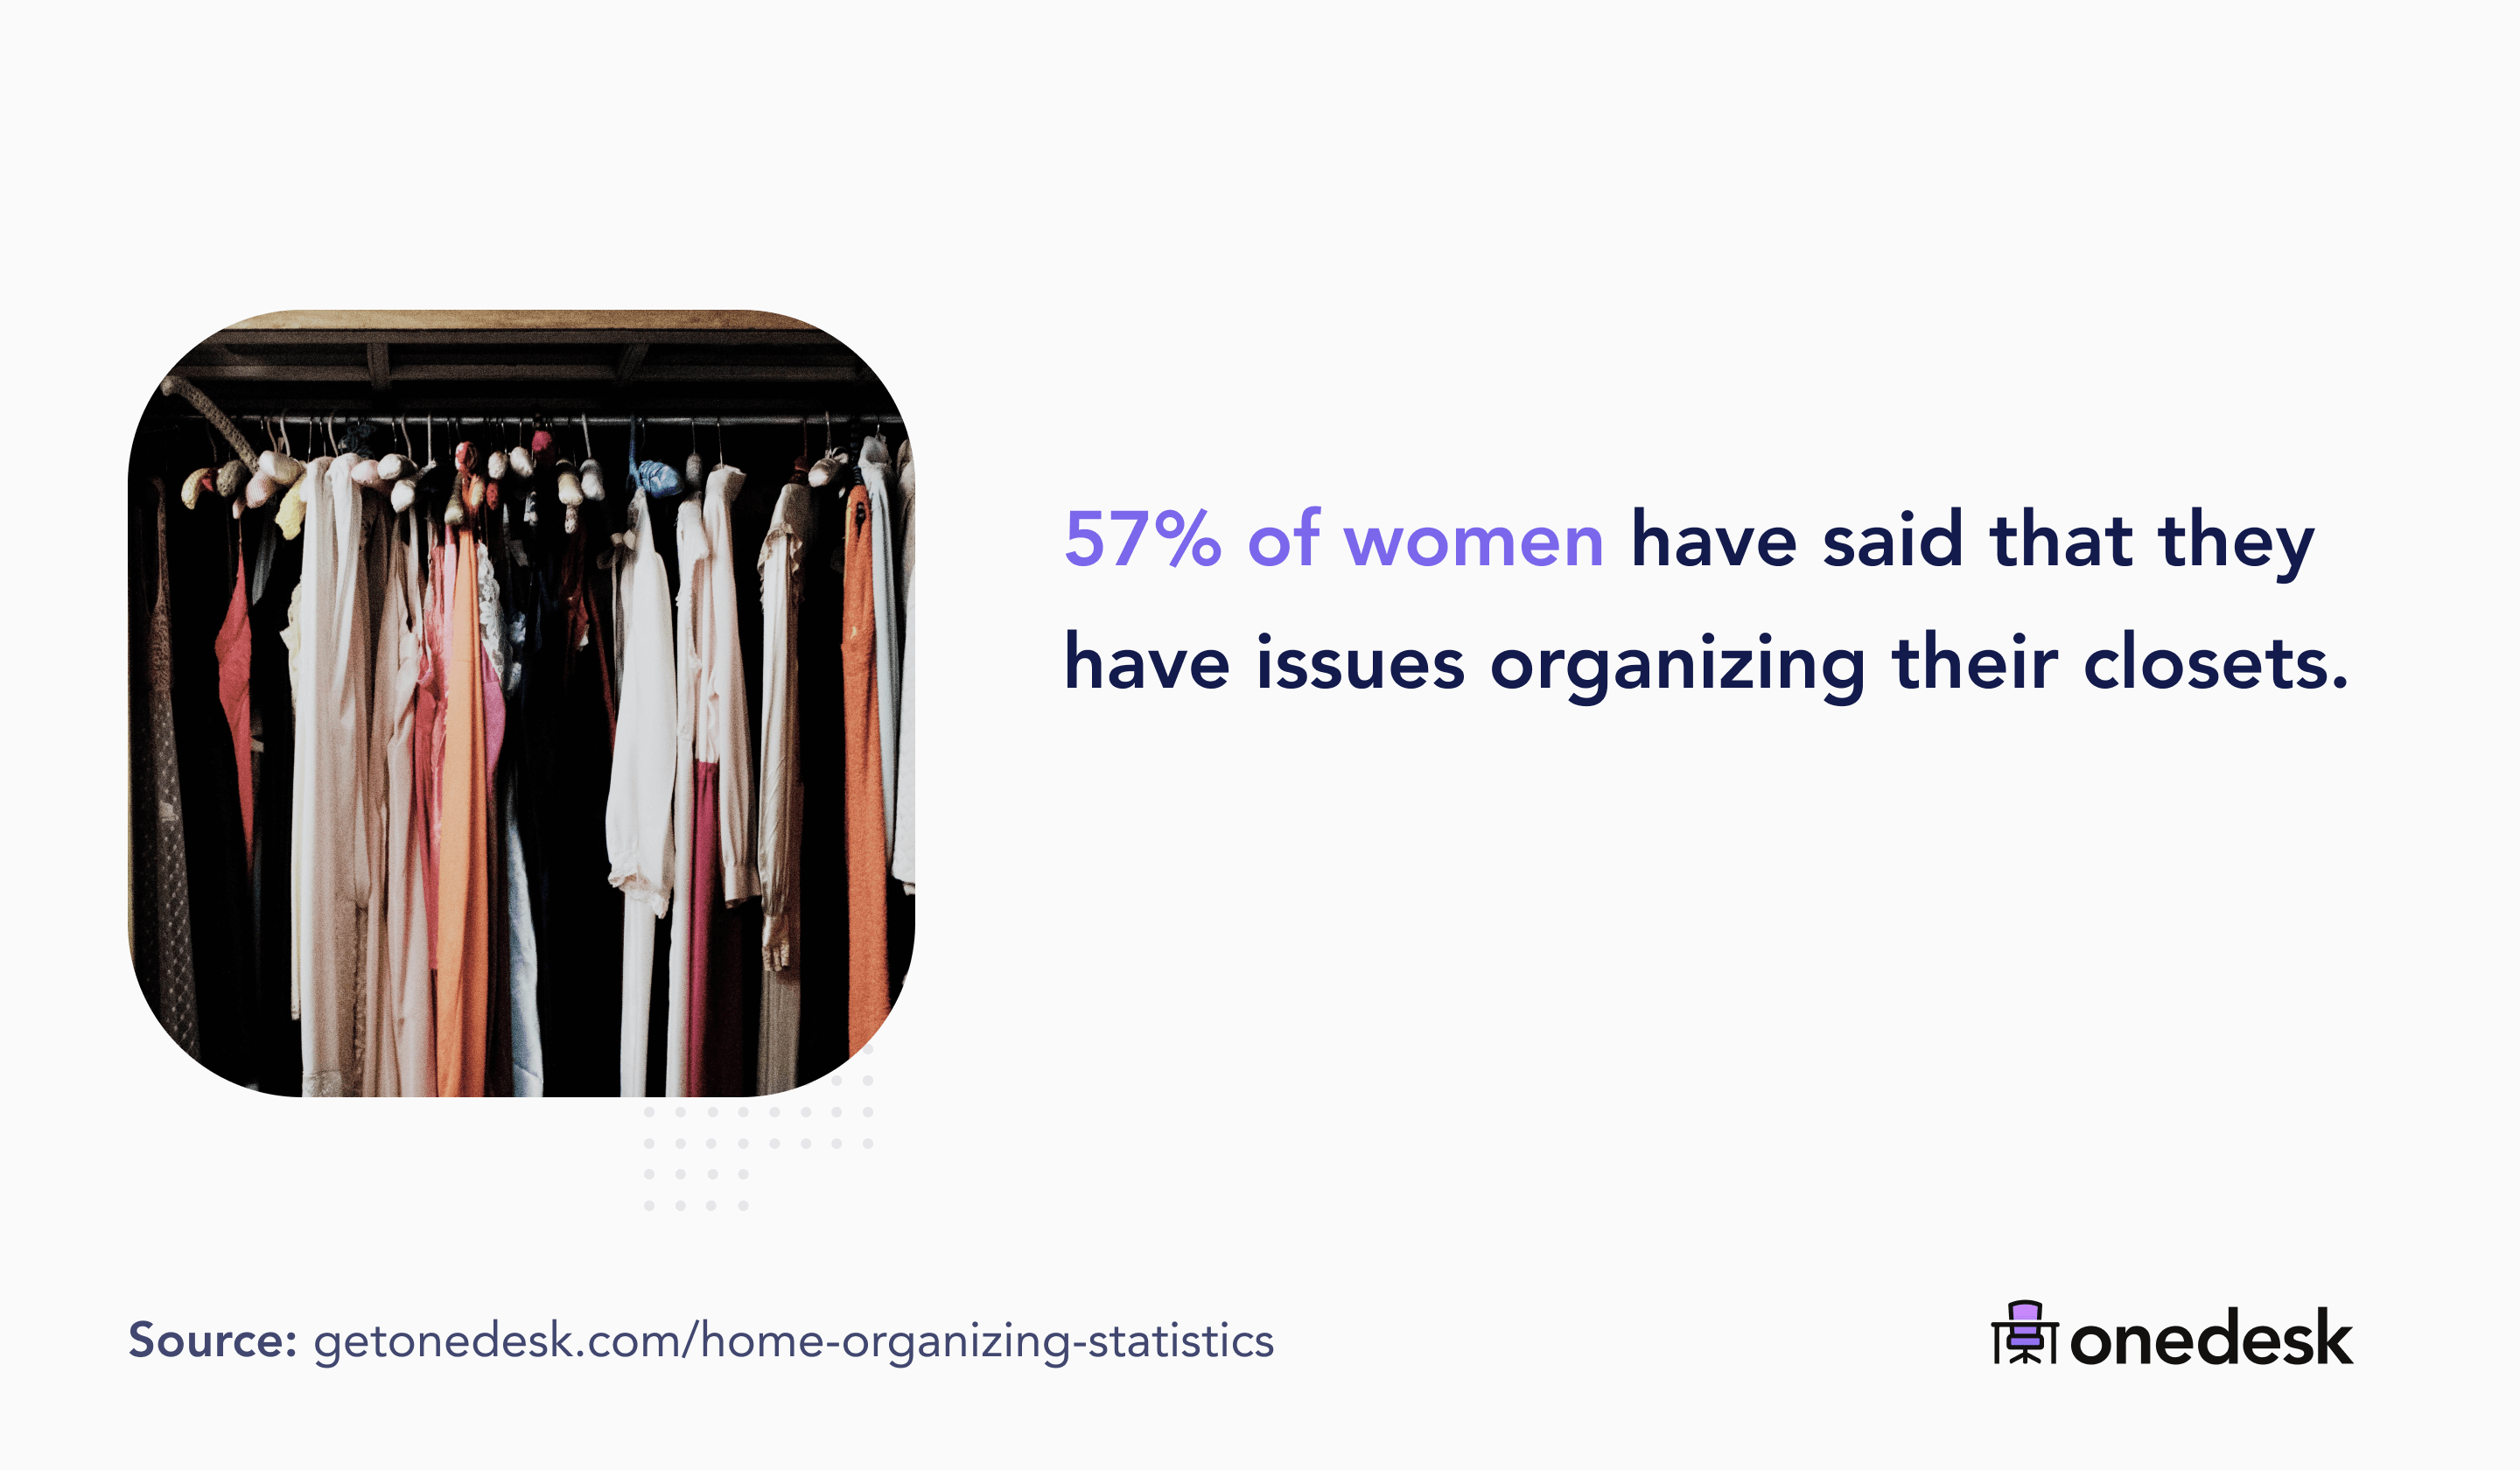 57% of women have difficulties organizing their closets